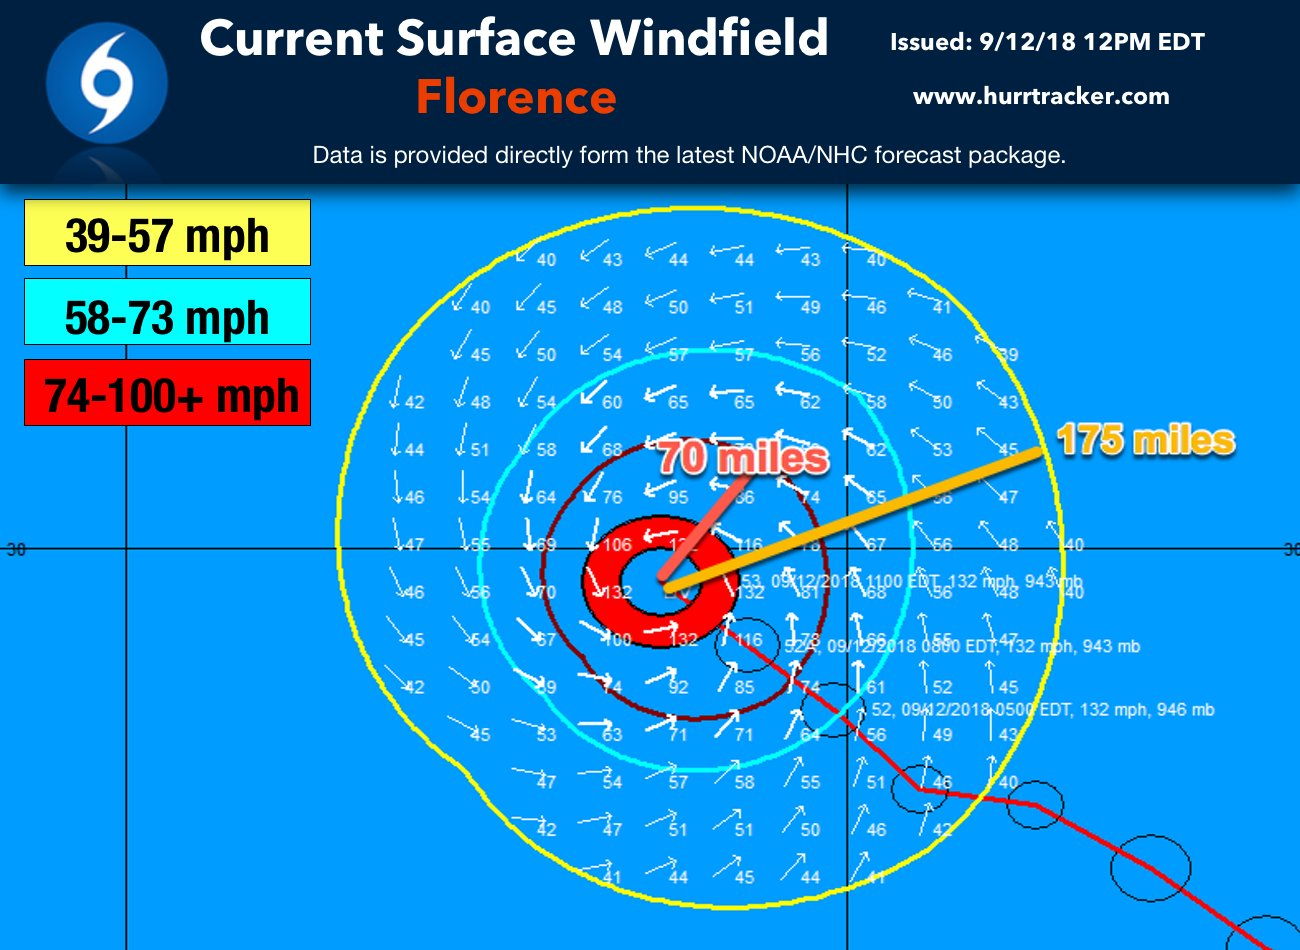 Florence is a very large major hurricane. Hurricane force winds extend out up to 70 miles from the center and tropical storm force winds reach 175 miles from the center.